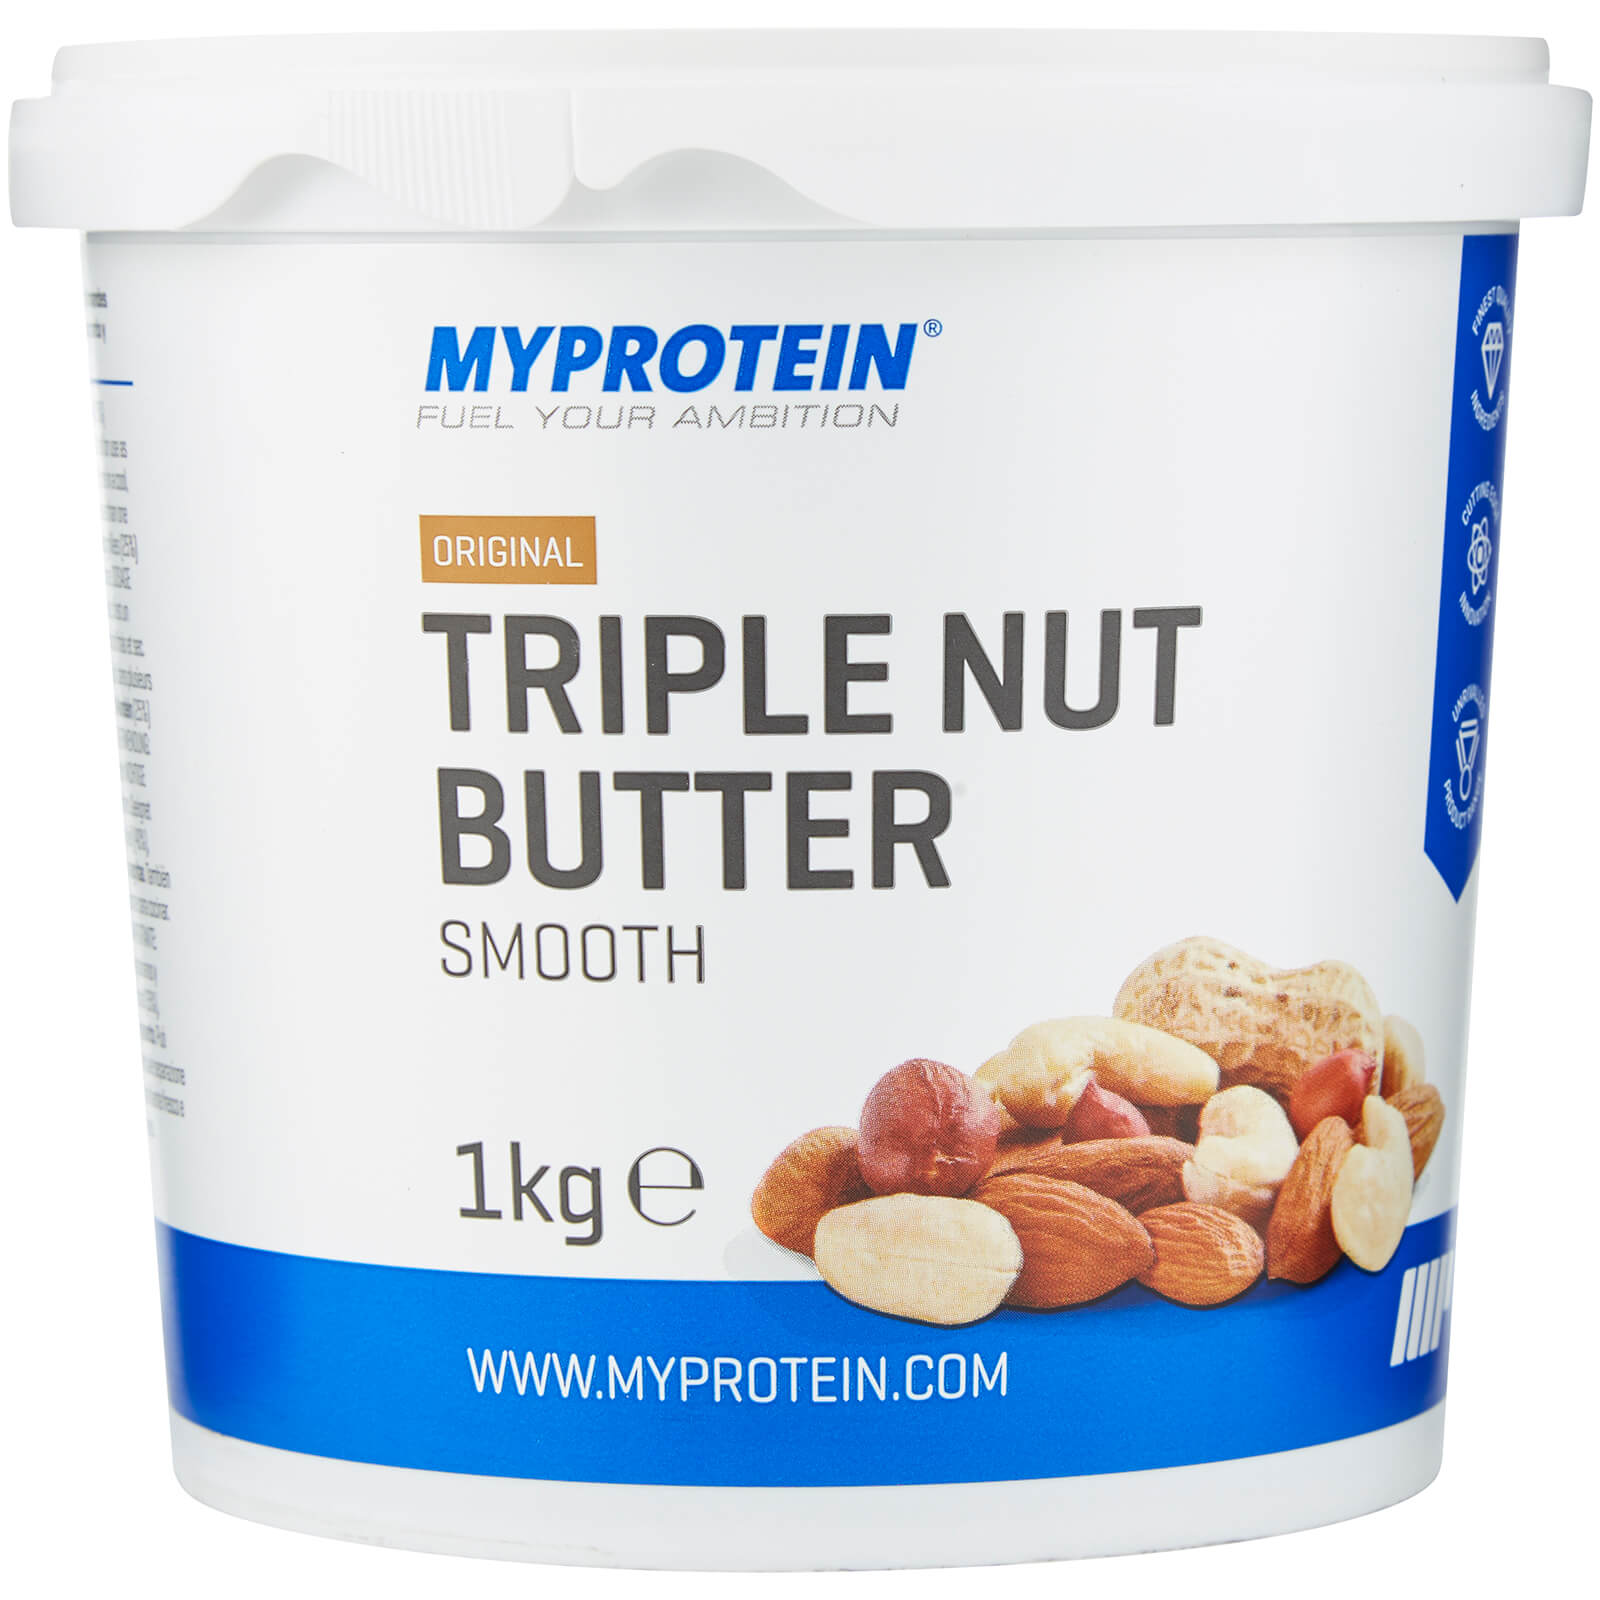 Mixed Nut Butter (Peanut, Cashew and Almond) - Unflavoured - 1kg